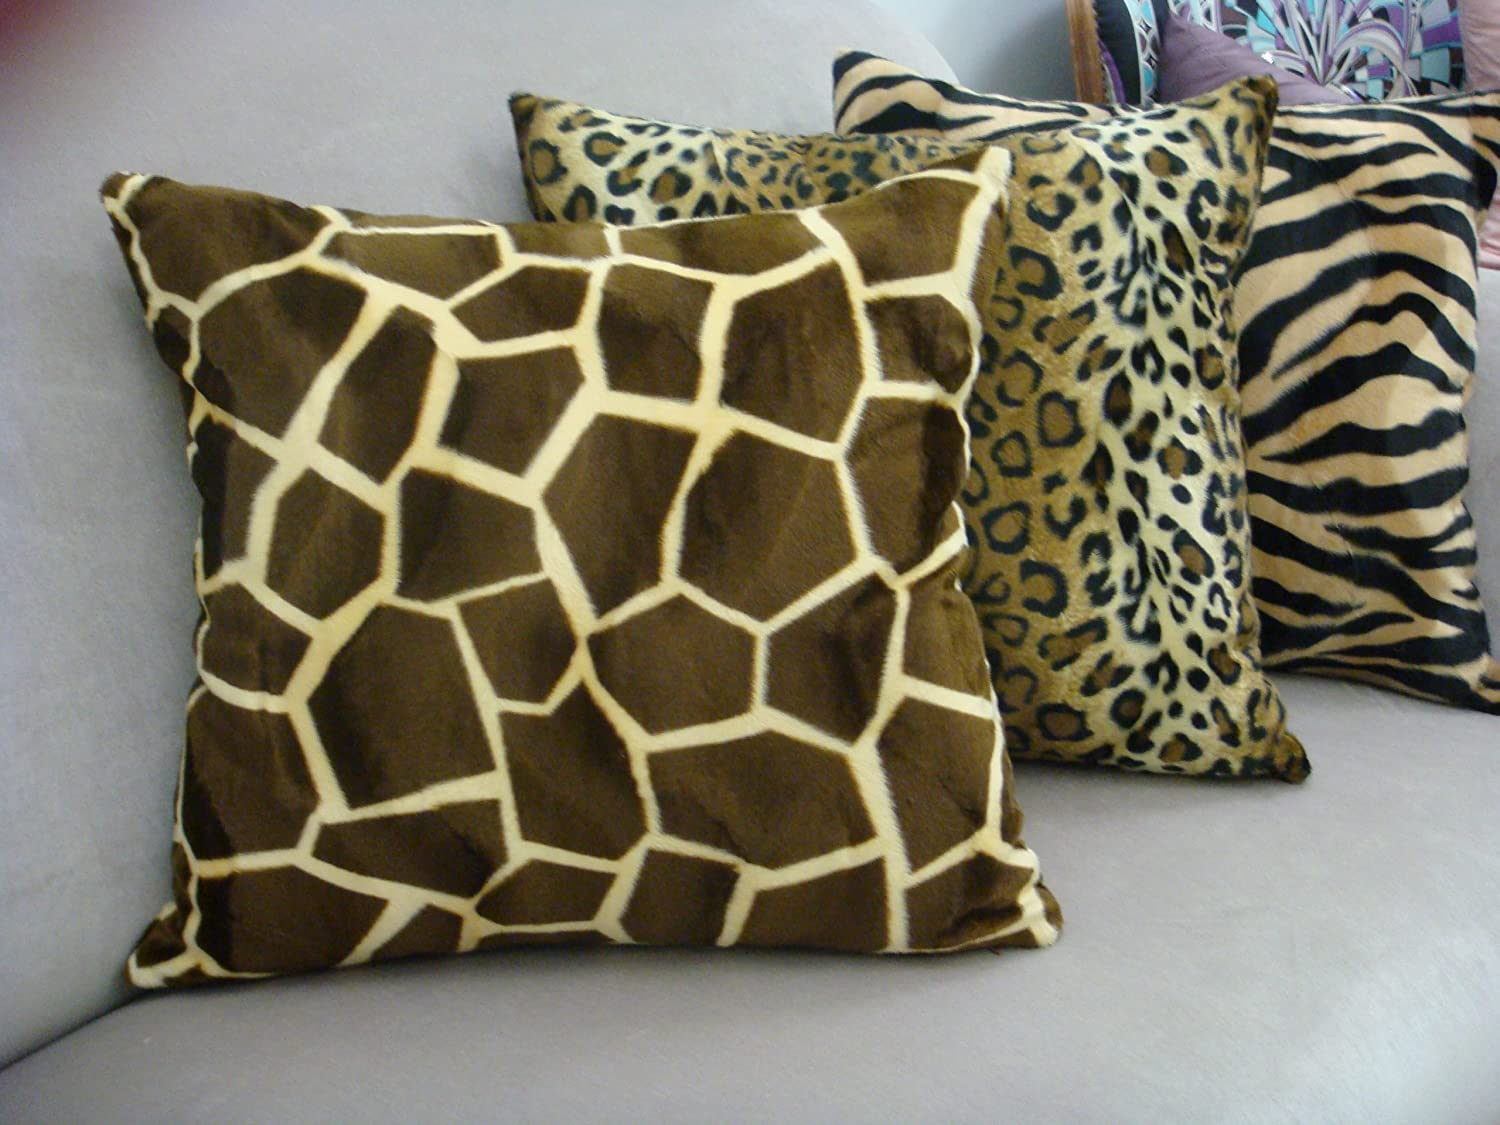 Giraffe Home Decor for Everyone  Pretty Shiny Little Things